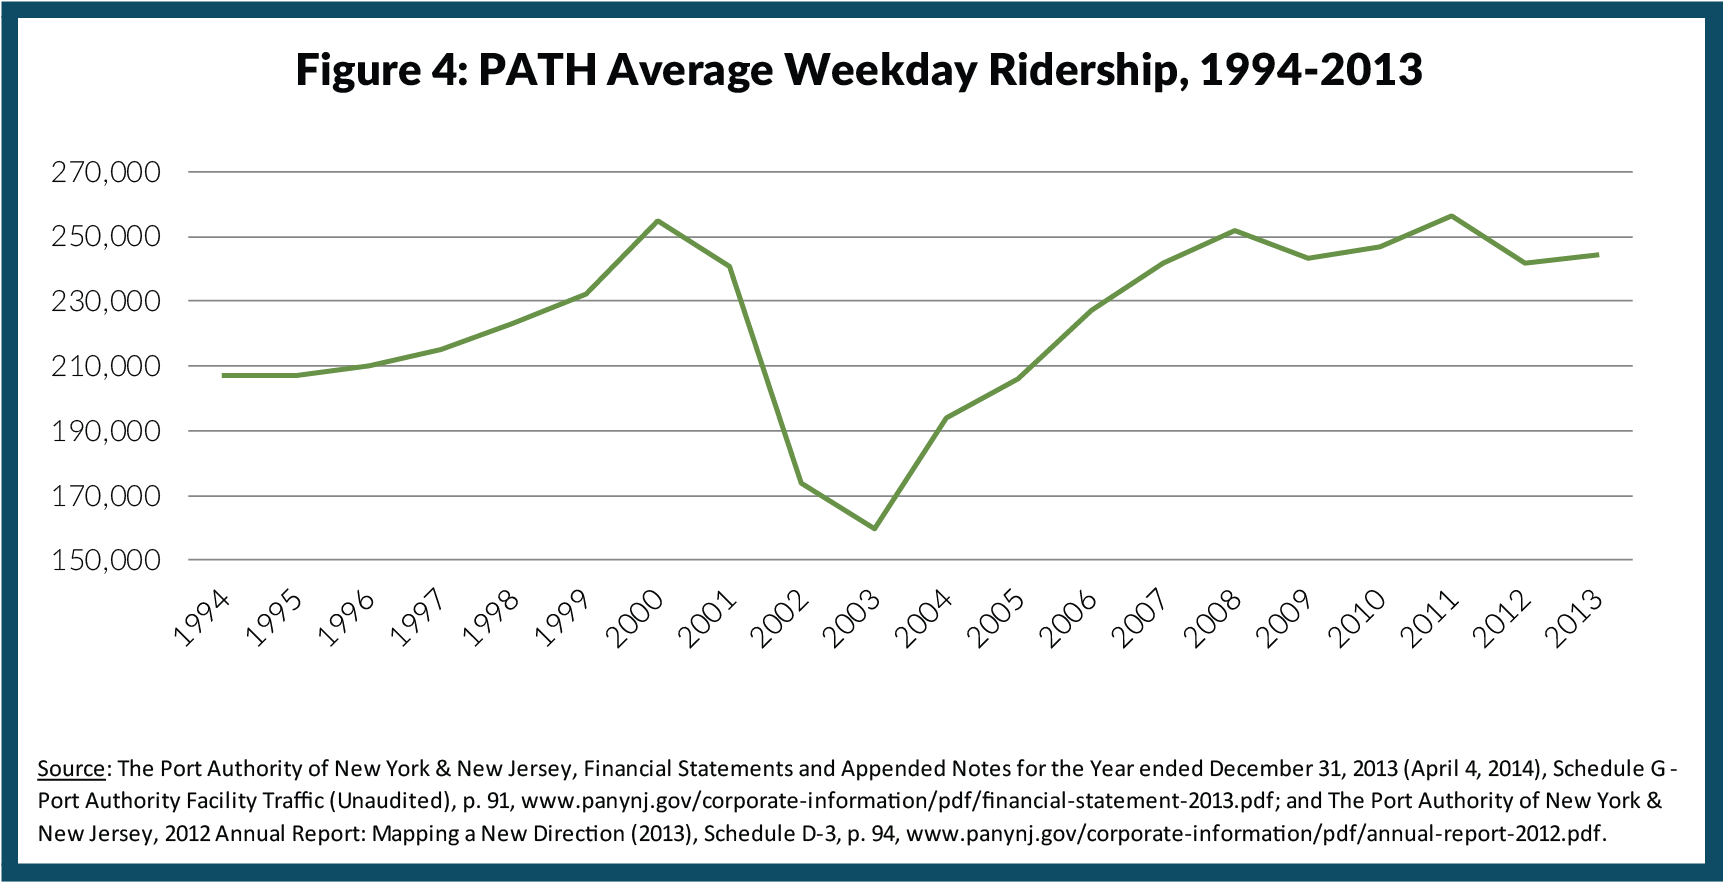 Figure 4: PATH Average Weekday Ridership, 1994-2013